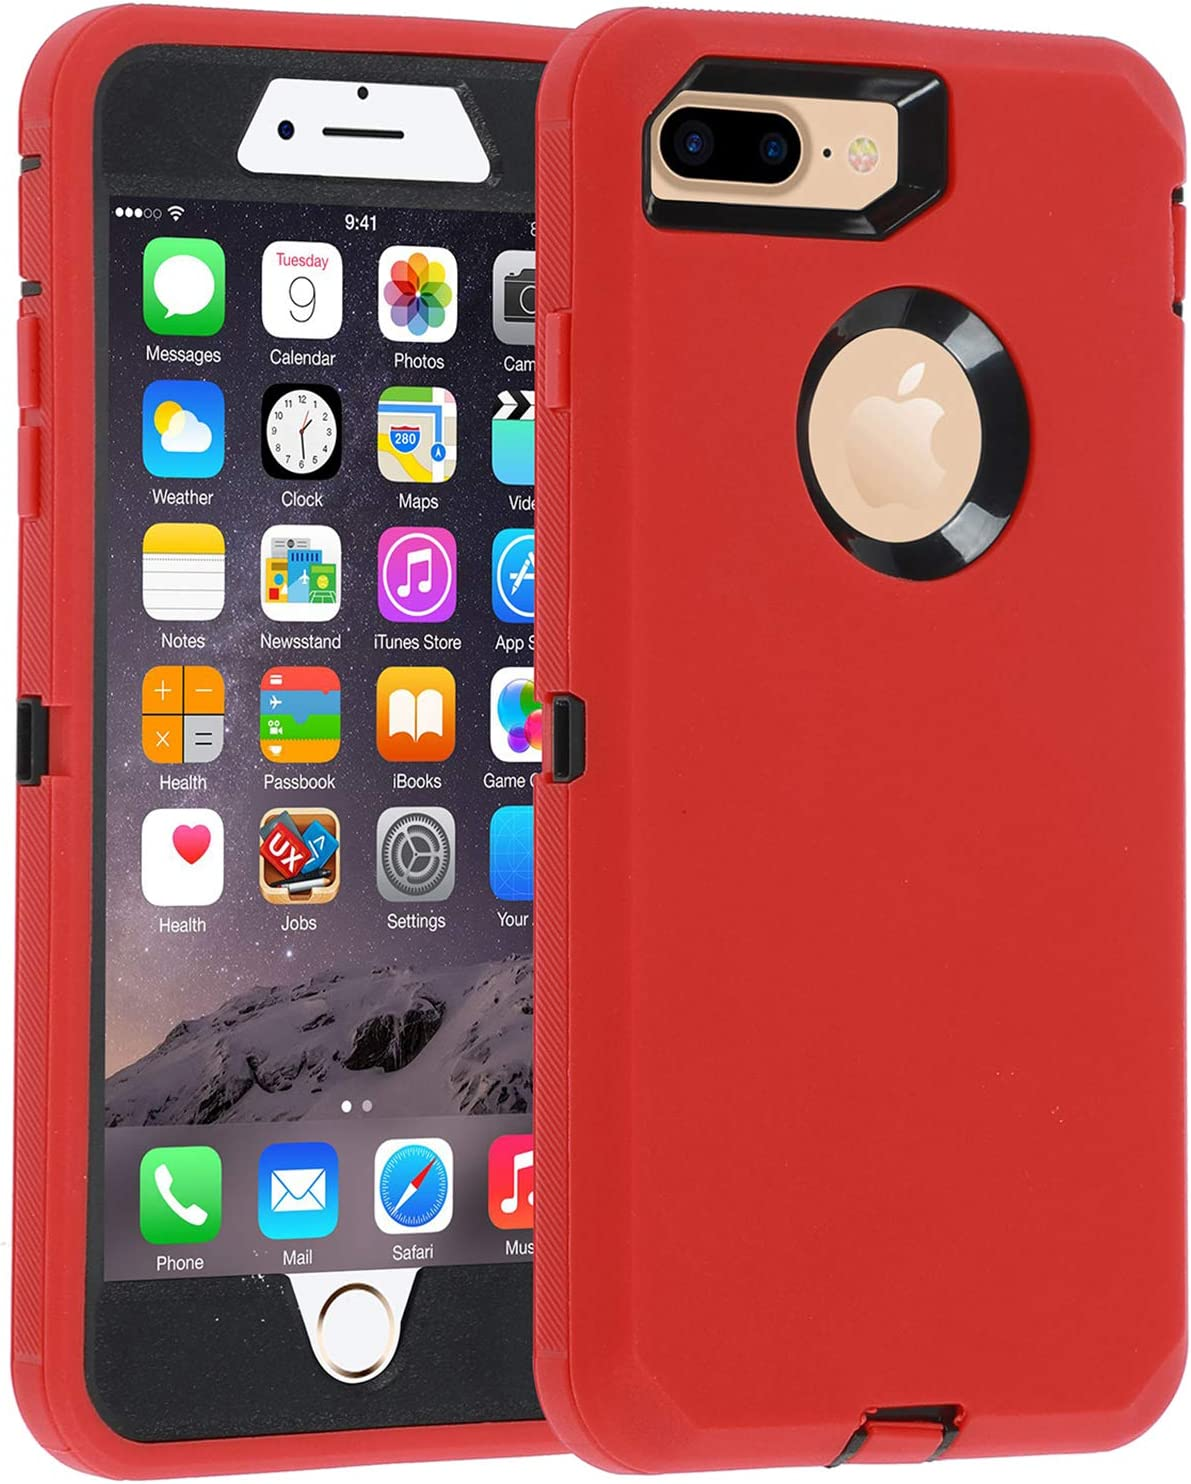 Co-Goldguard Case for iPhone 7 Plus/8 Plus Heavy Duty 3 in 1 Built-in Screen Protector Durable Cover Dust-Proof Shockproof Scratch-Resistant Shell Compatible with iPhone 7+/8+ 5.5,Red&Black